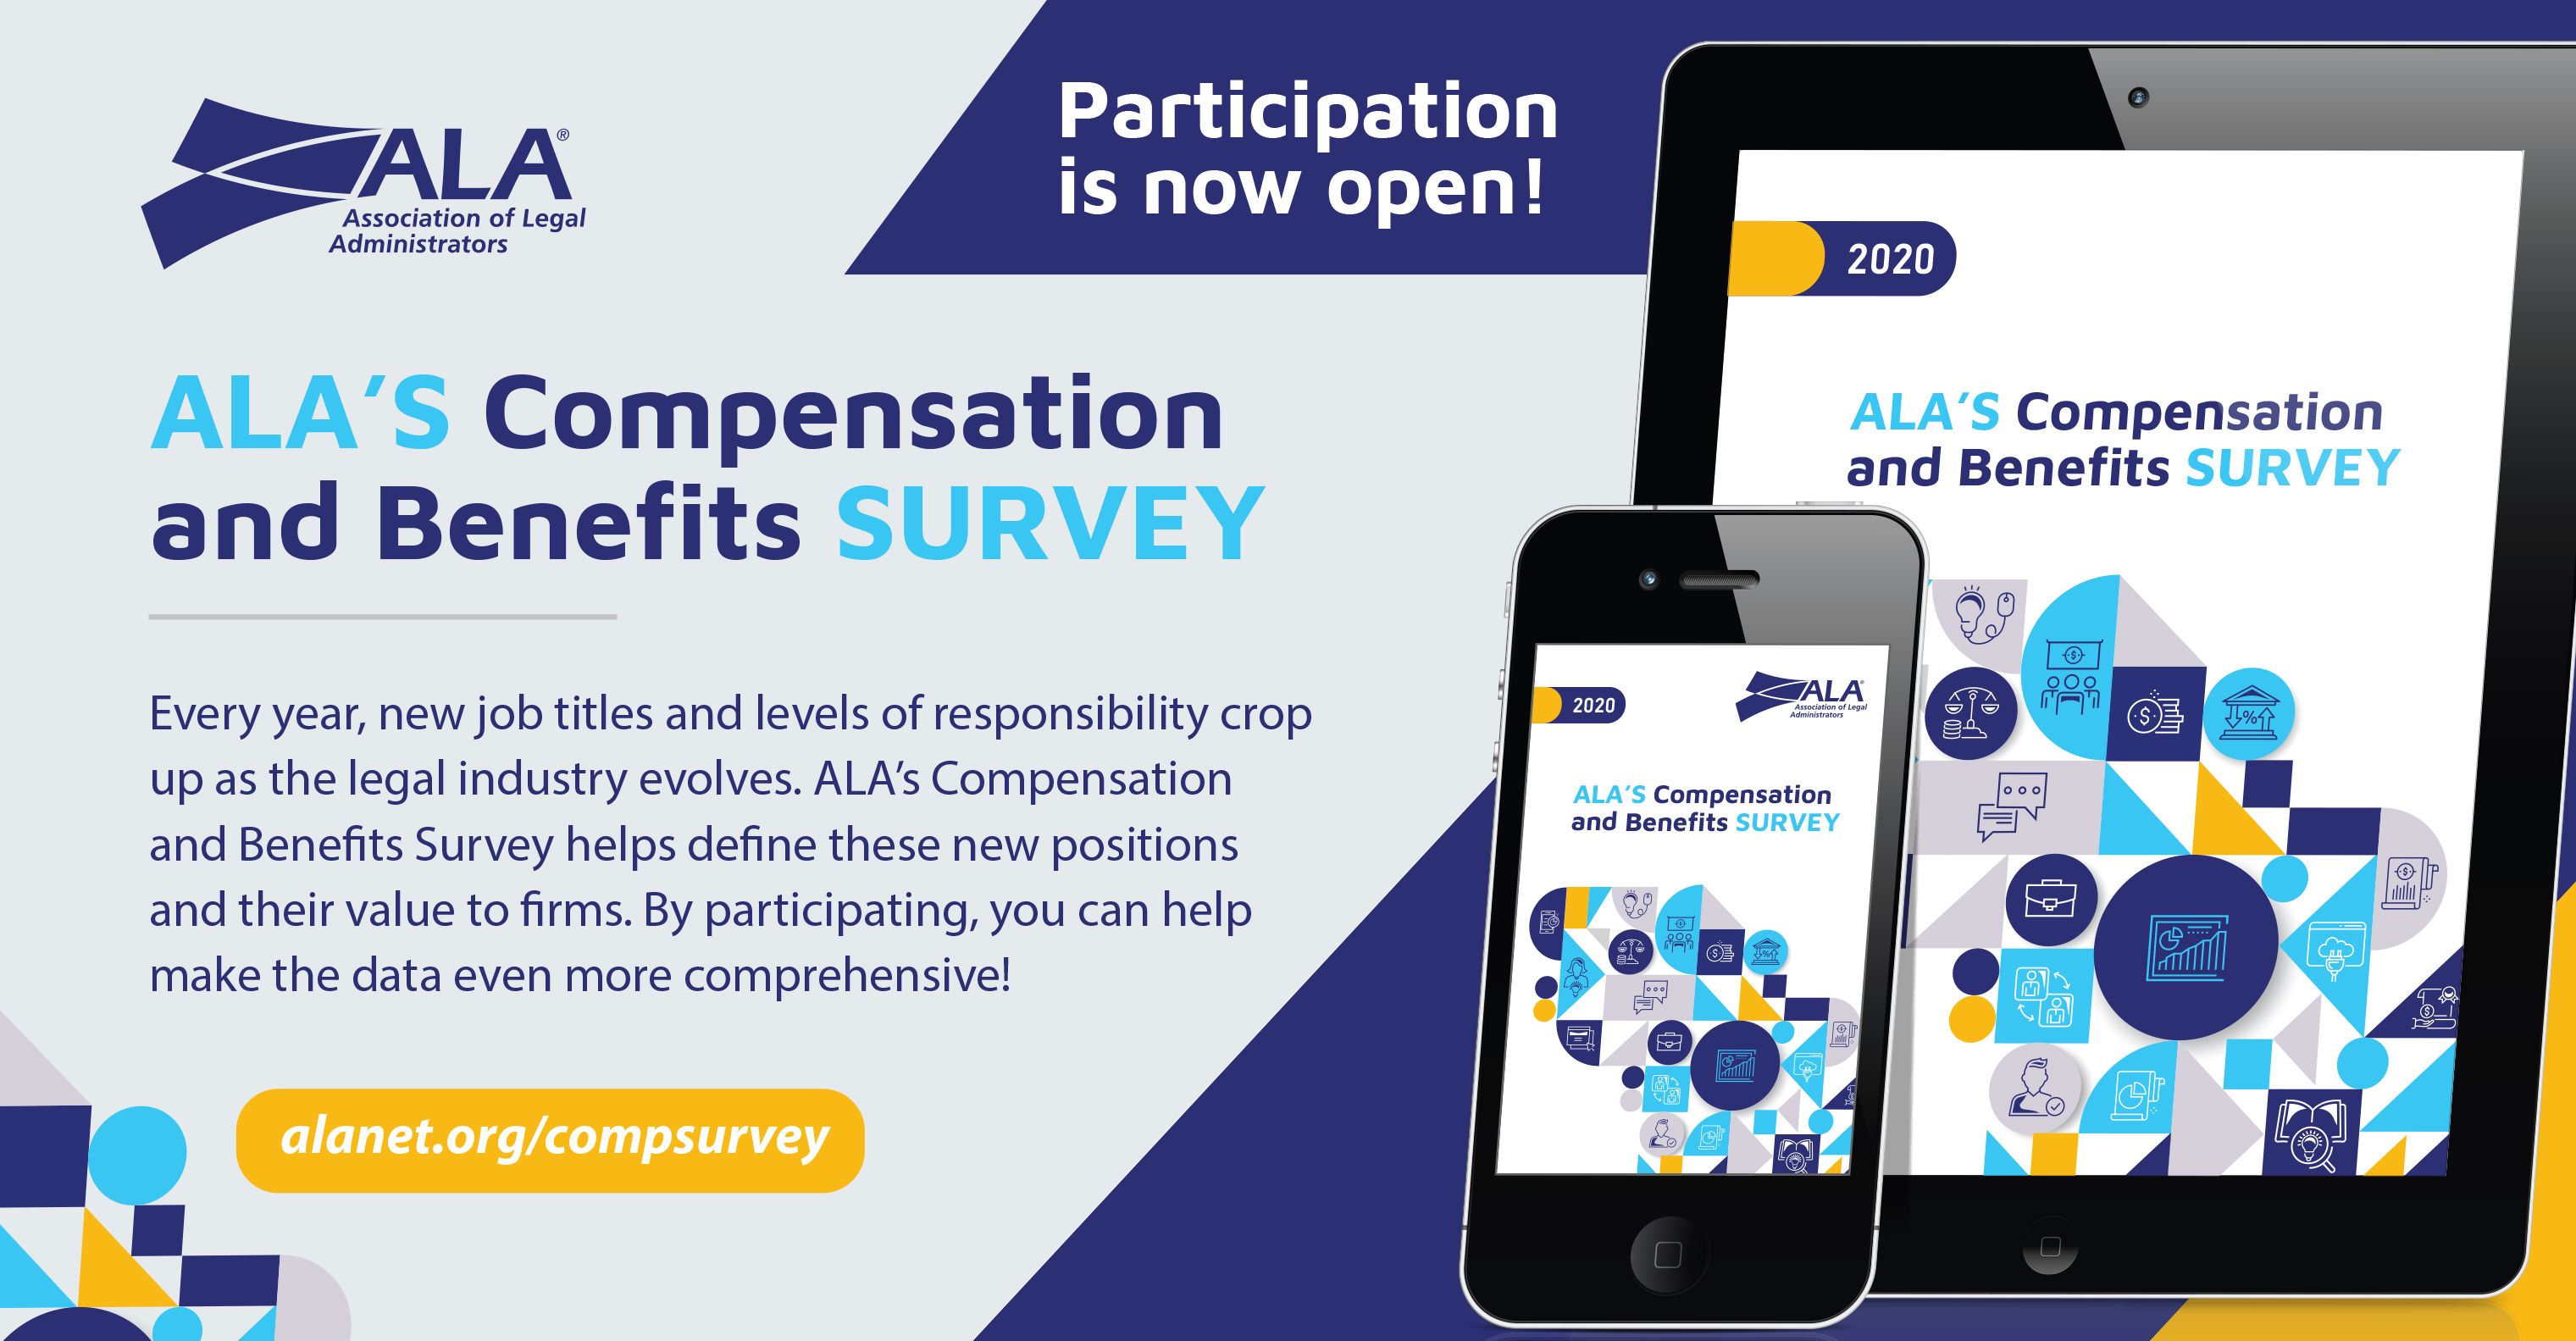 lm-may20-compensation-ben-survey-home-page-desktop-730x380